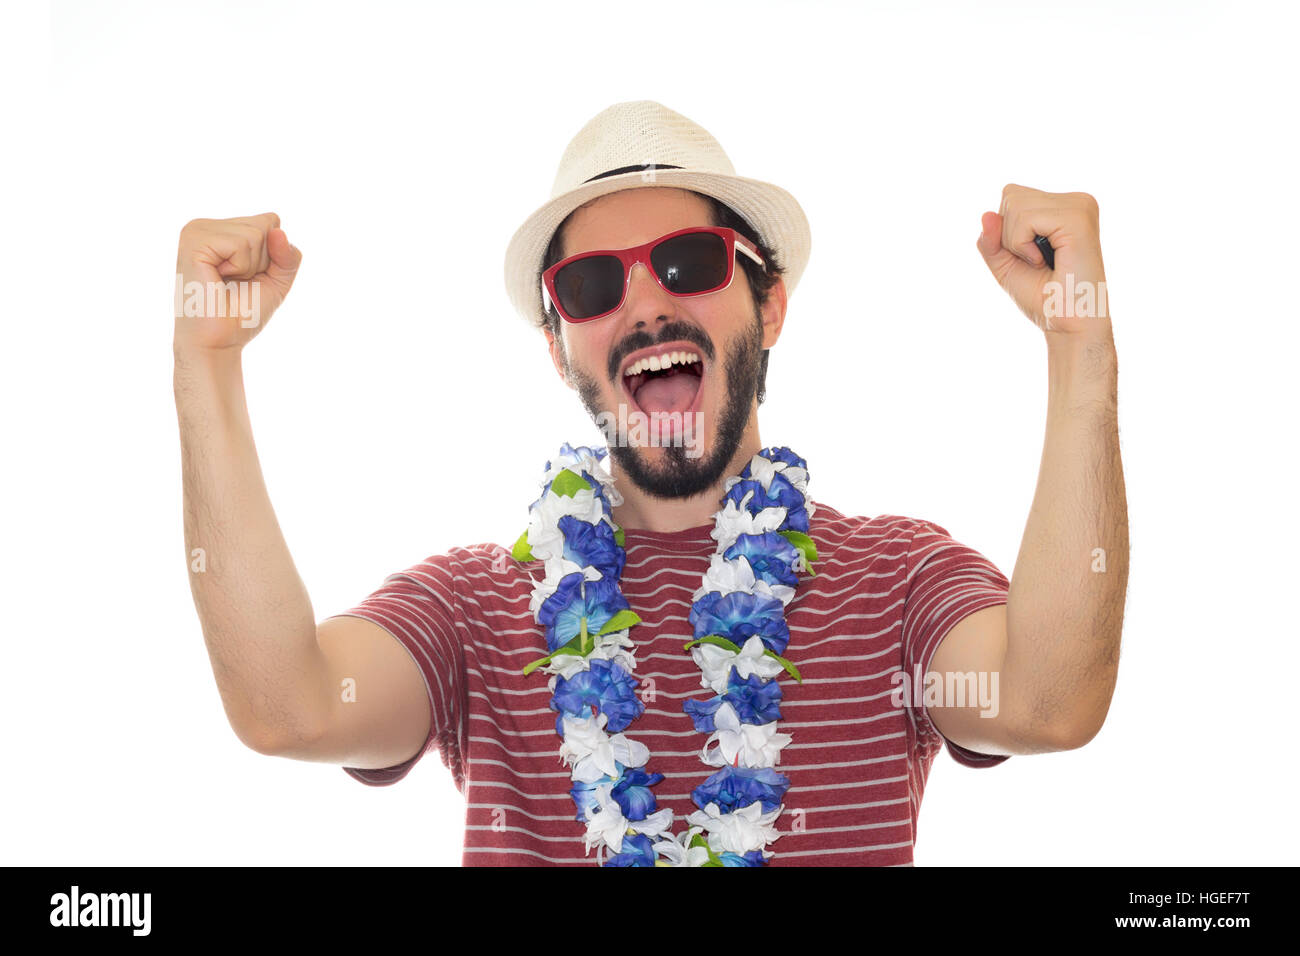 Party man prepared for the carnival. Wearing sunglasses, hat and flower necklace. White background. - Stock Image